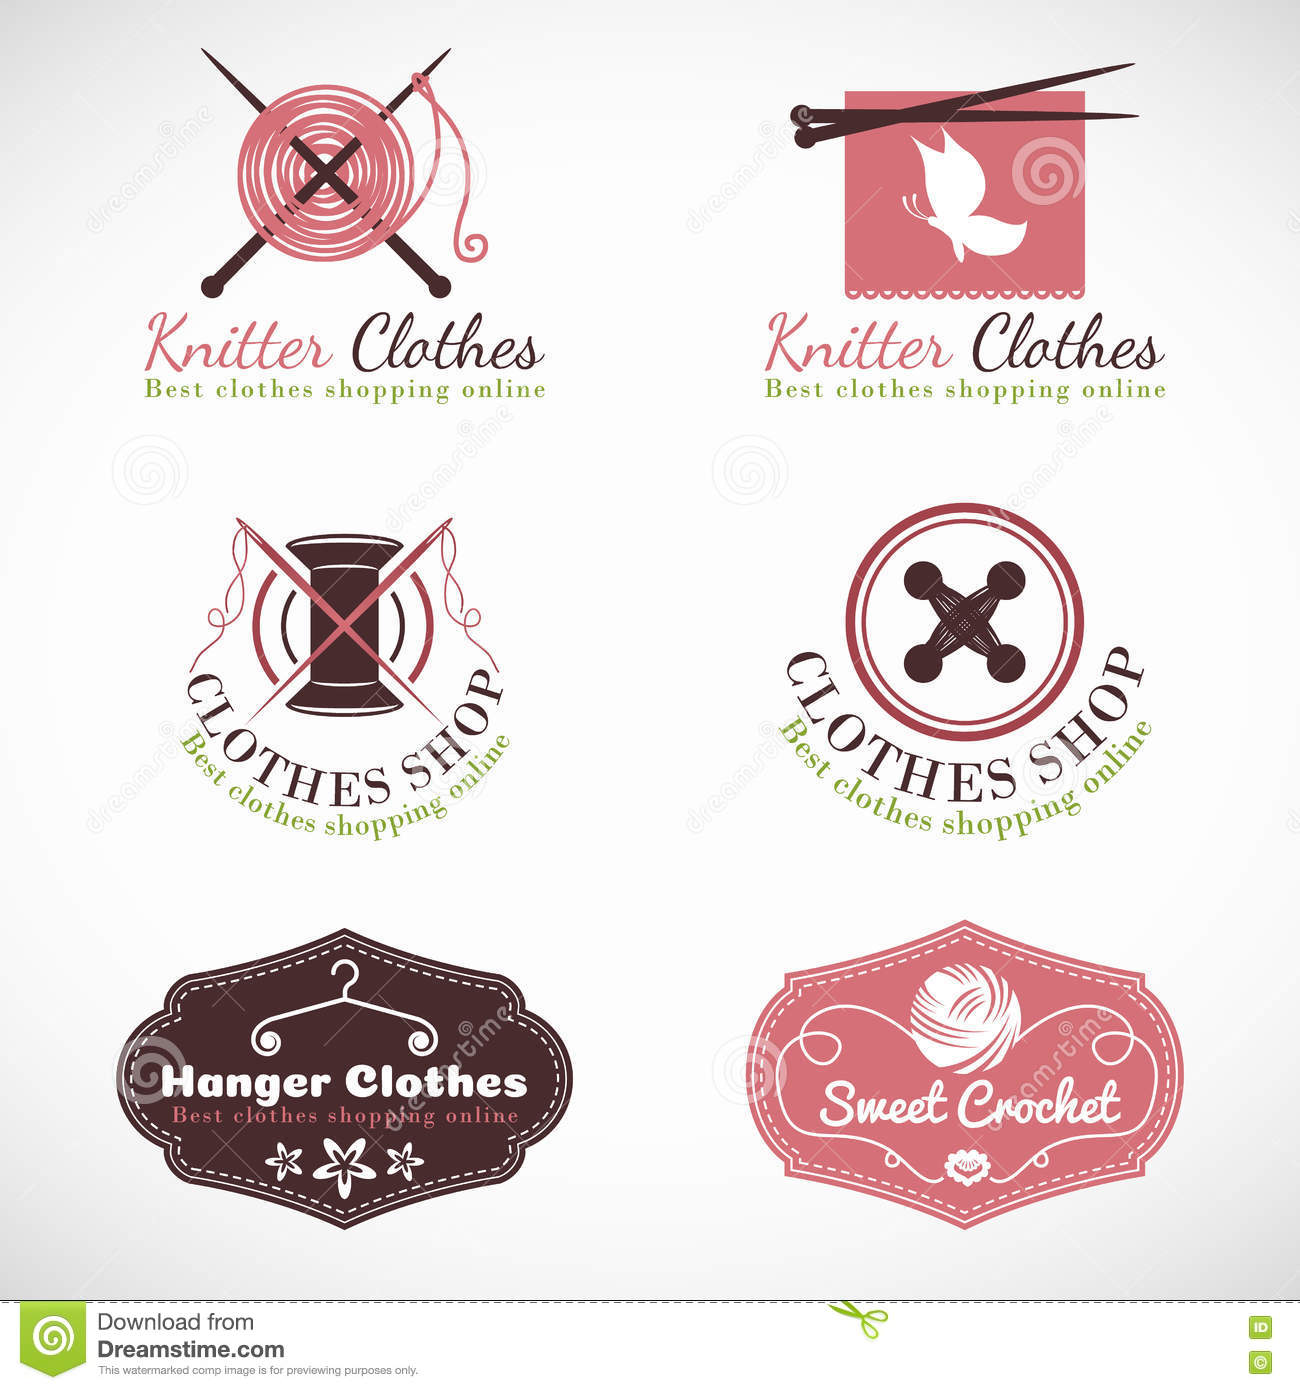 knitting hanger and crochet vintage clothes fashion shop